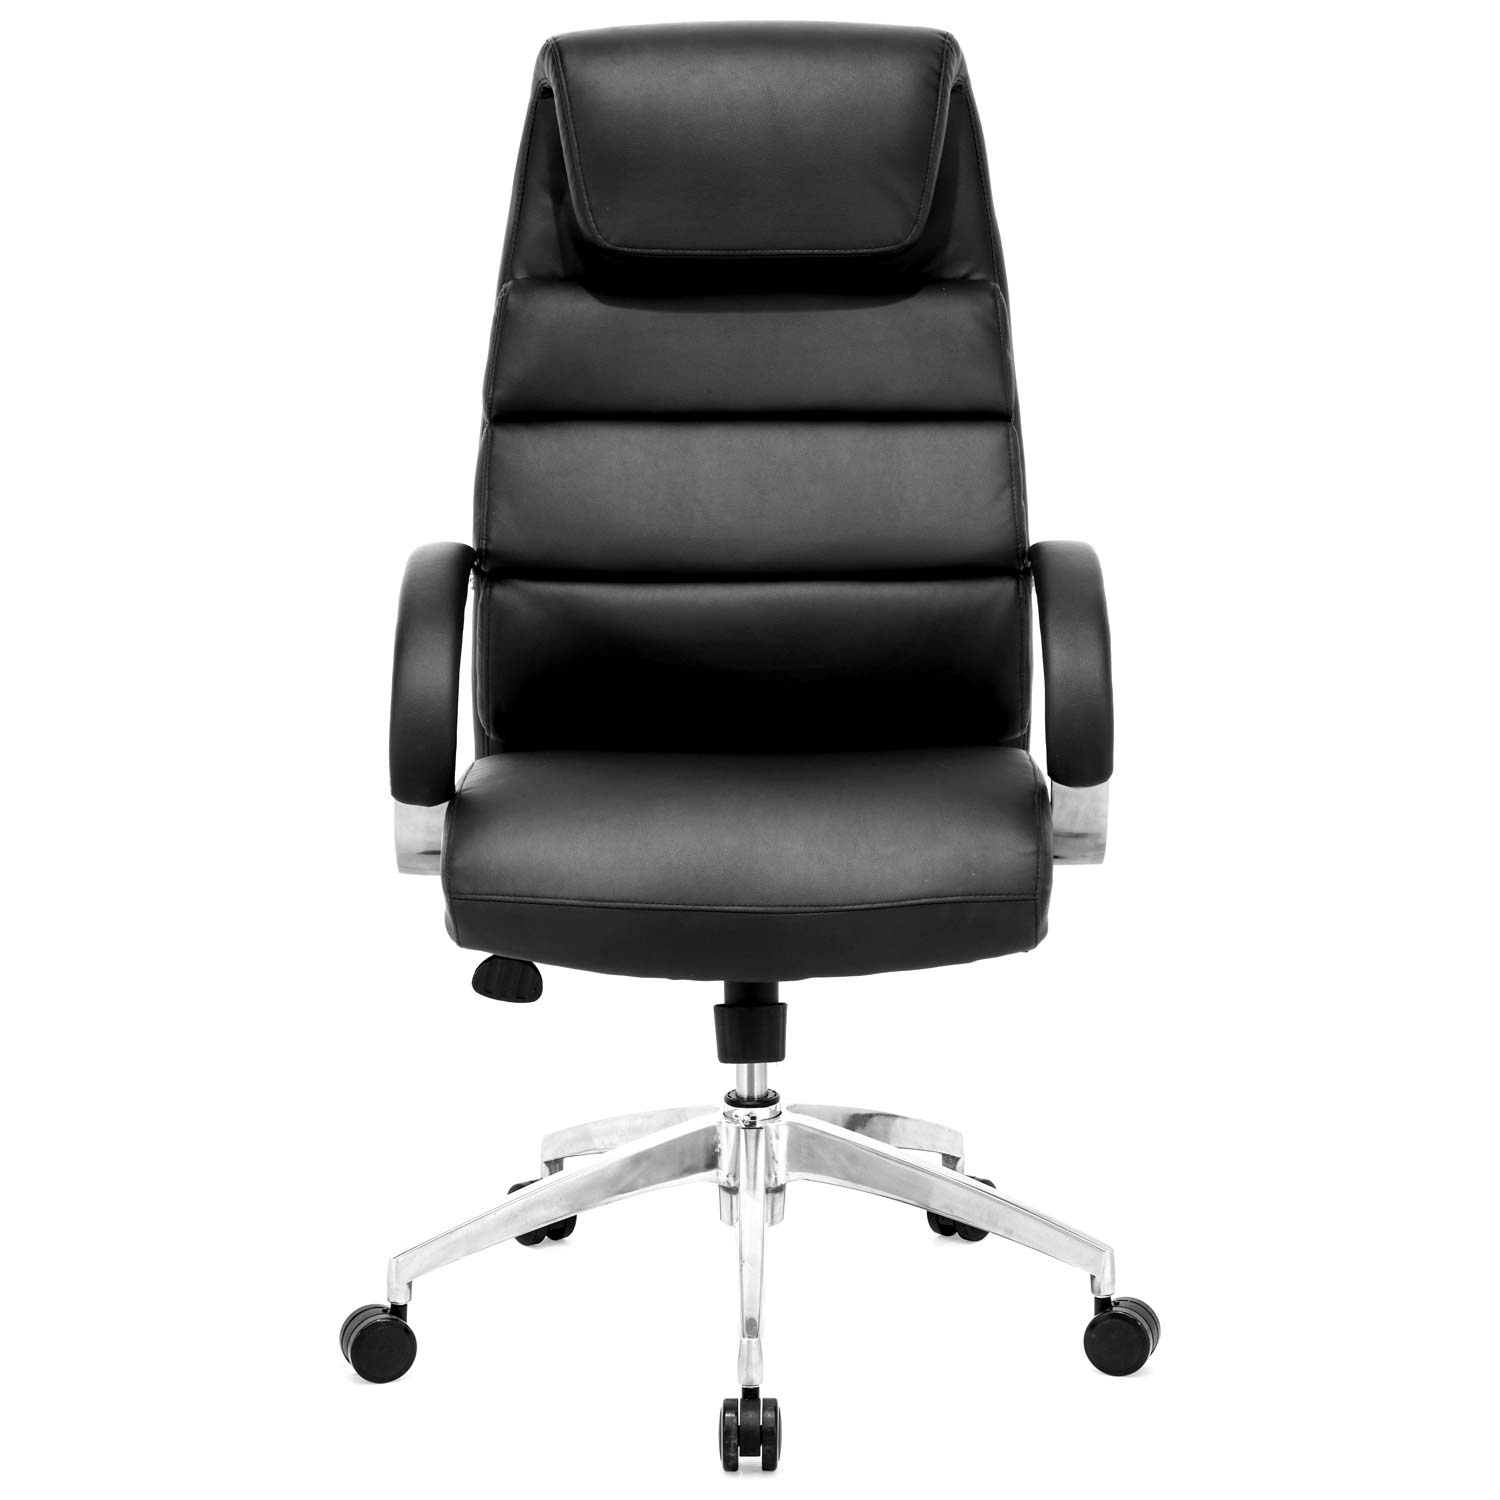 office chair comfort accessories swing egg lider chrome steel black dcg stores